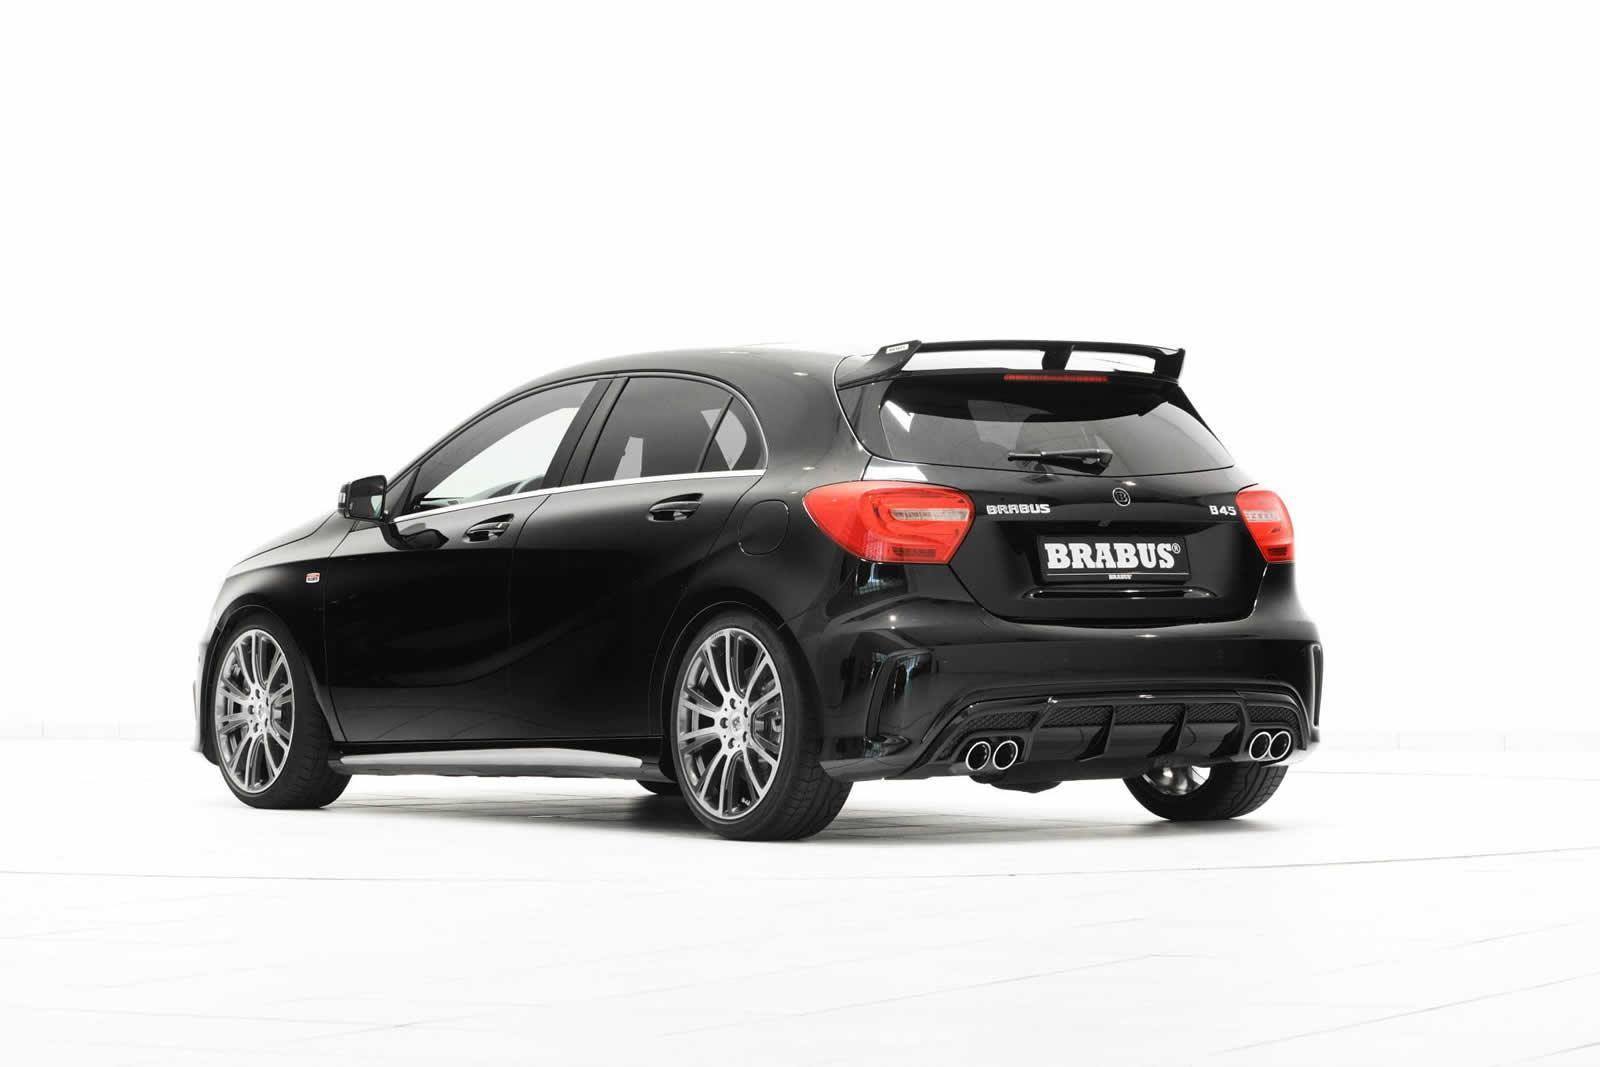 brabus mercedes a45 amg tuning kit autonews 1. Black Bedroom Furniture Sets. Home Design Ideas